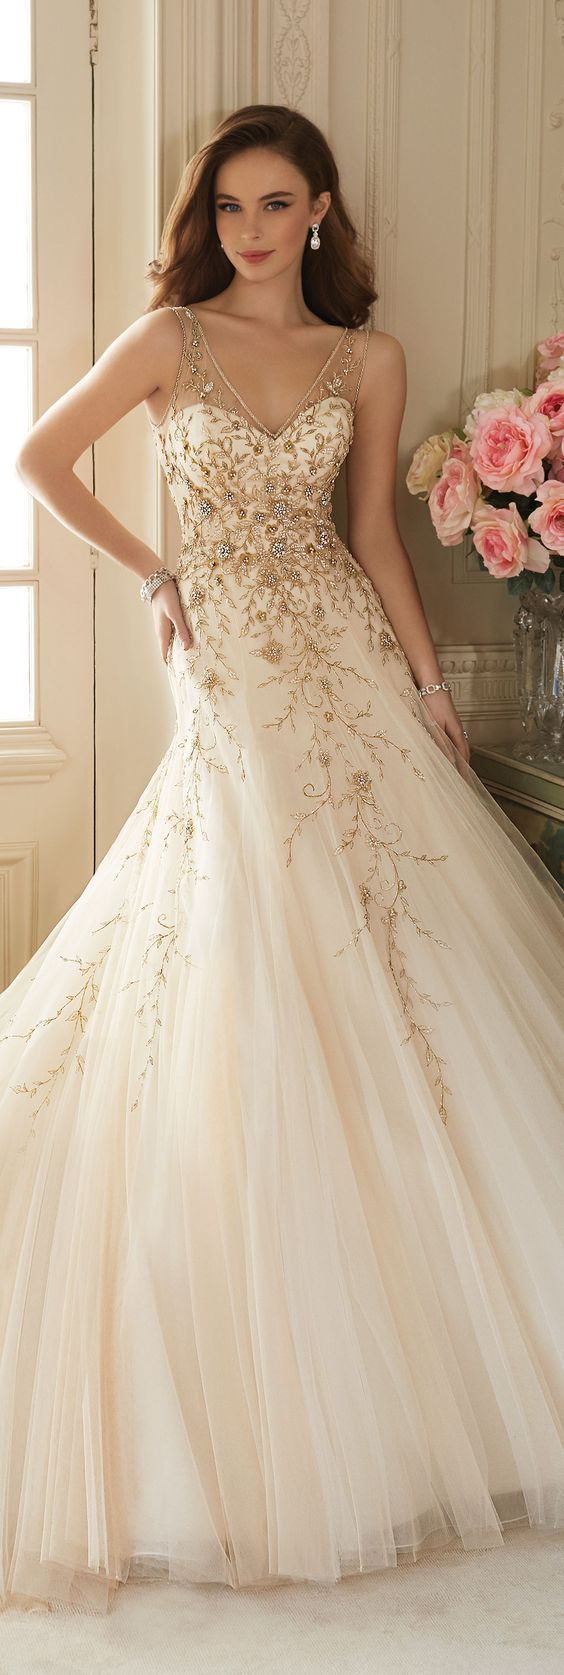 Wedding Dresses by Sophia Tolli - Spring 2016 Collection - Style No. Y11650 - Darice #tulleweddingdress: